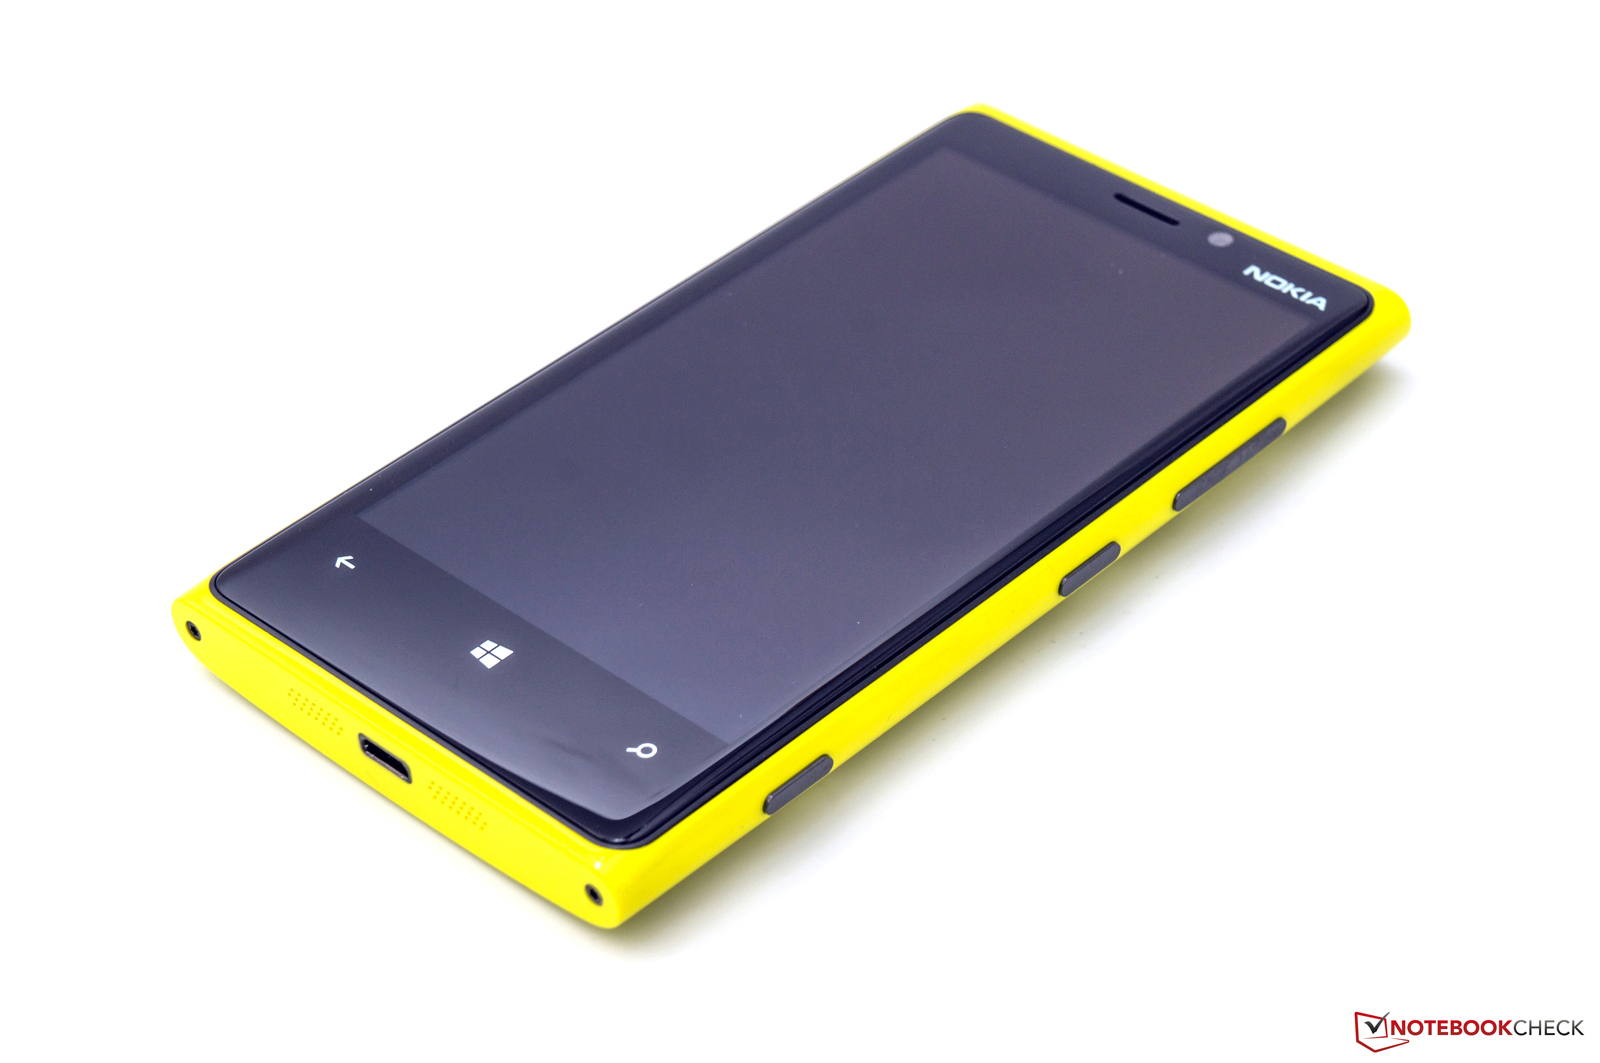 Review Nokia Lumia 920 Smartphone Reviews Asha 310 Dual Sim Resmi White Solid Poly Carbonate Chassis In Yellow